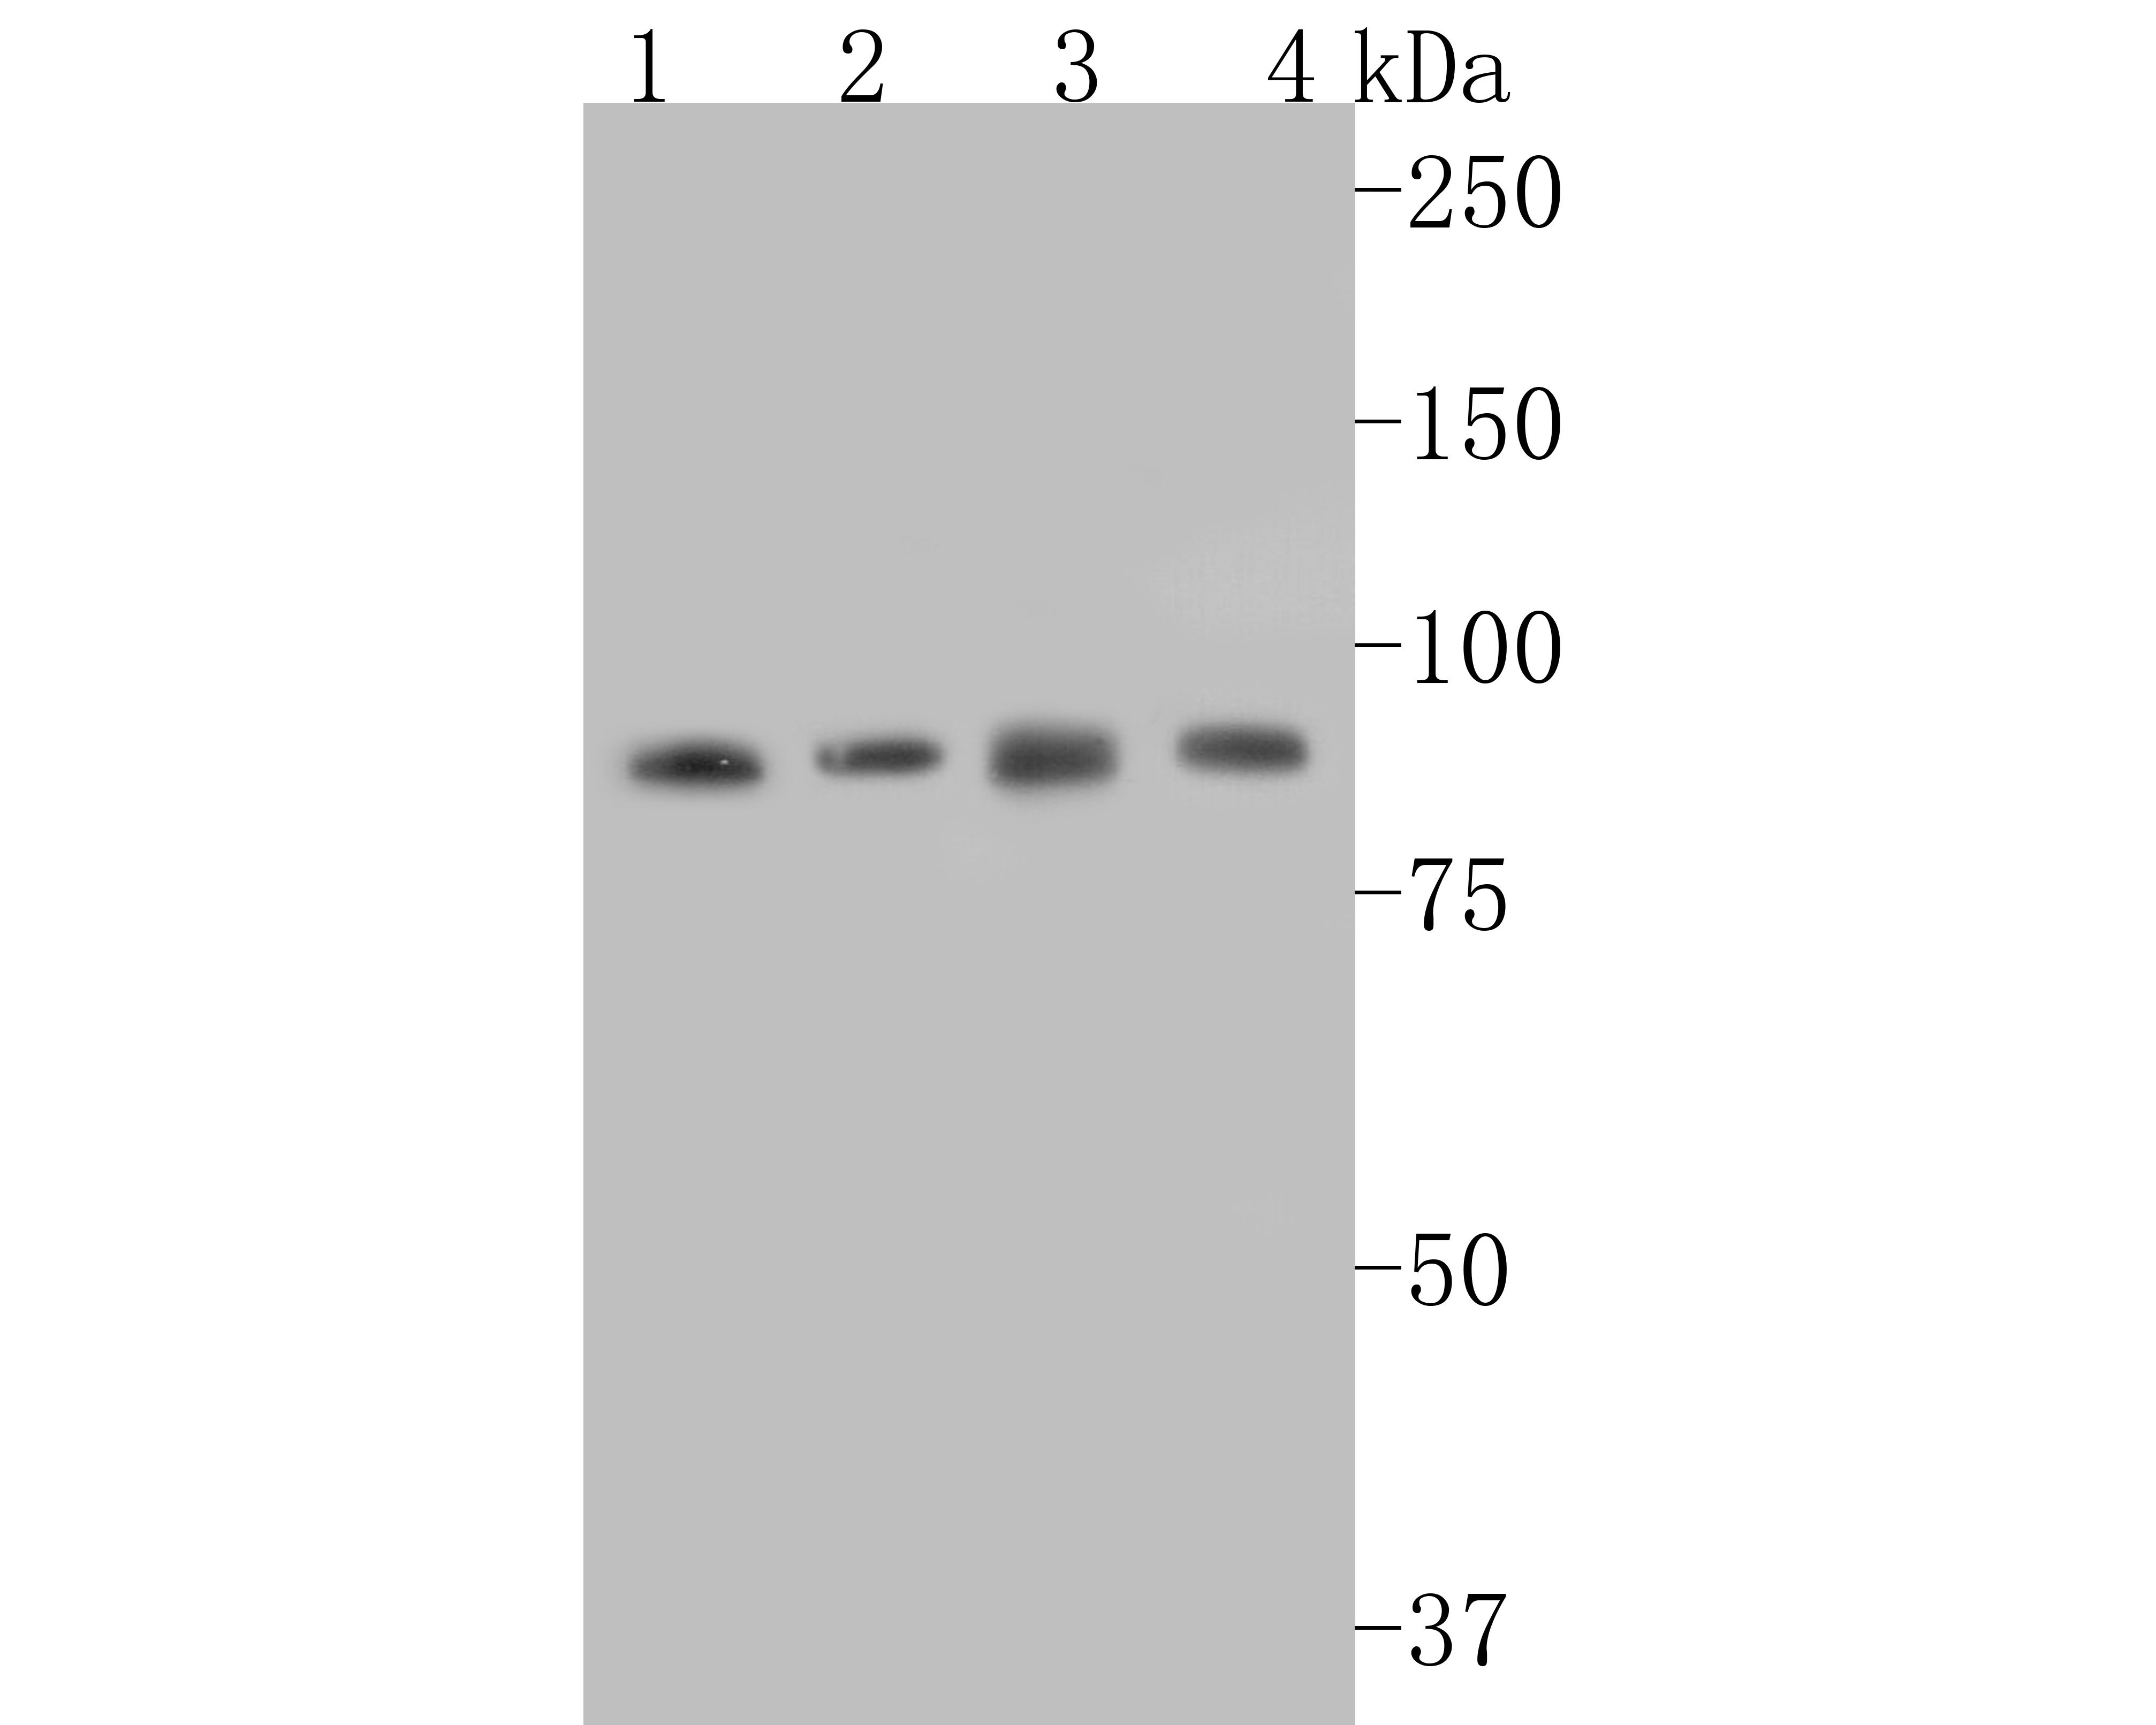 Western blot analysis of Stat3 on different lysates. Proteins were transferred to a PVDF membrane and blocked with 5% BSA in PBS for 1 hour at room temperature. The primary antibody (ET1607-38, 1/500) was used in 5% BSA at room temperature for 2 hours. Goat Anti-Rabbit IgG - HRP Secondary Antibody (HA1001) at 1:5,000 dilution was used for 1 hour at room temperature.<br />  Positive control: <br />  Lane 1: SiHa cell lysate<br />  Lane 2: SW480 cell lysate<br />  Lane 1: PC-12 cell lysate<br />  Lane 2: SHG-44 cell lysate